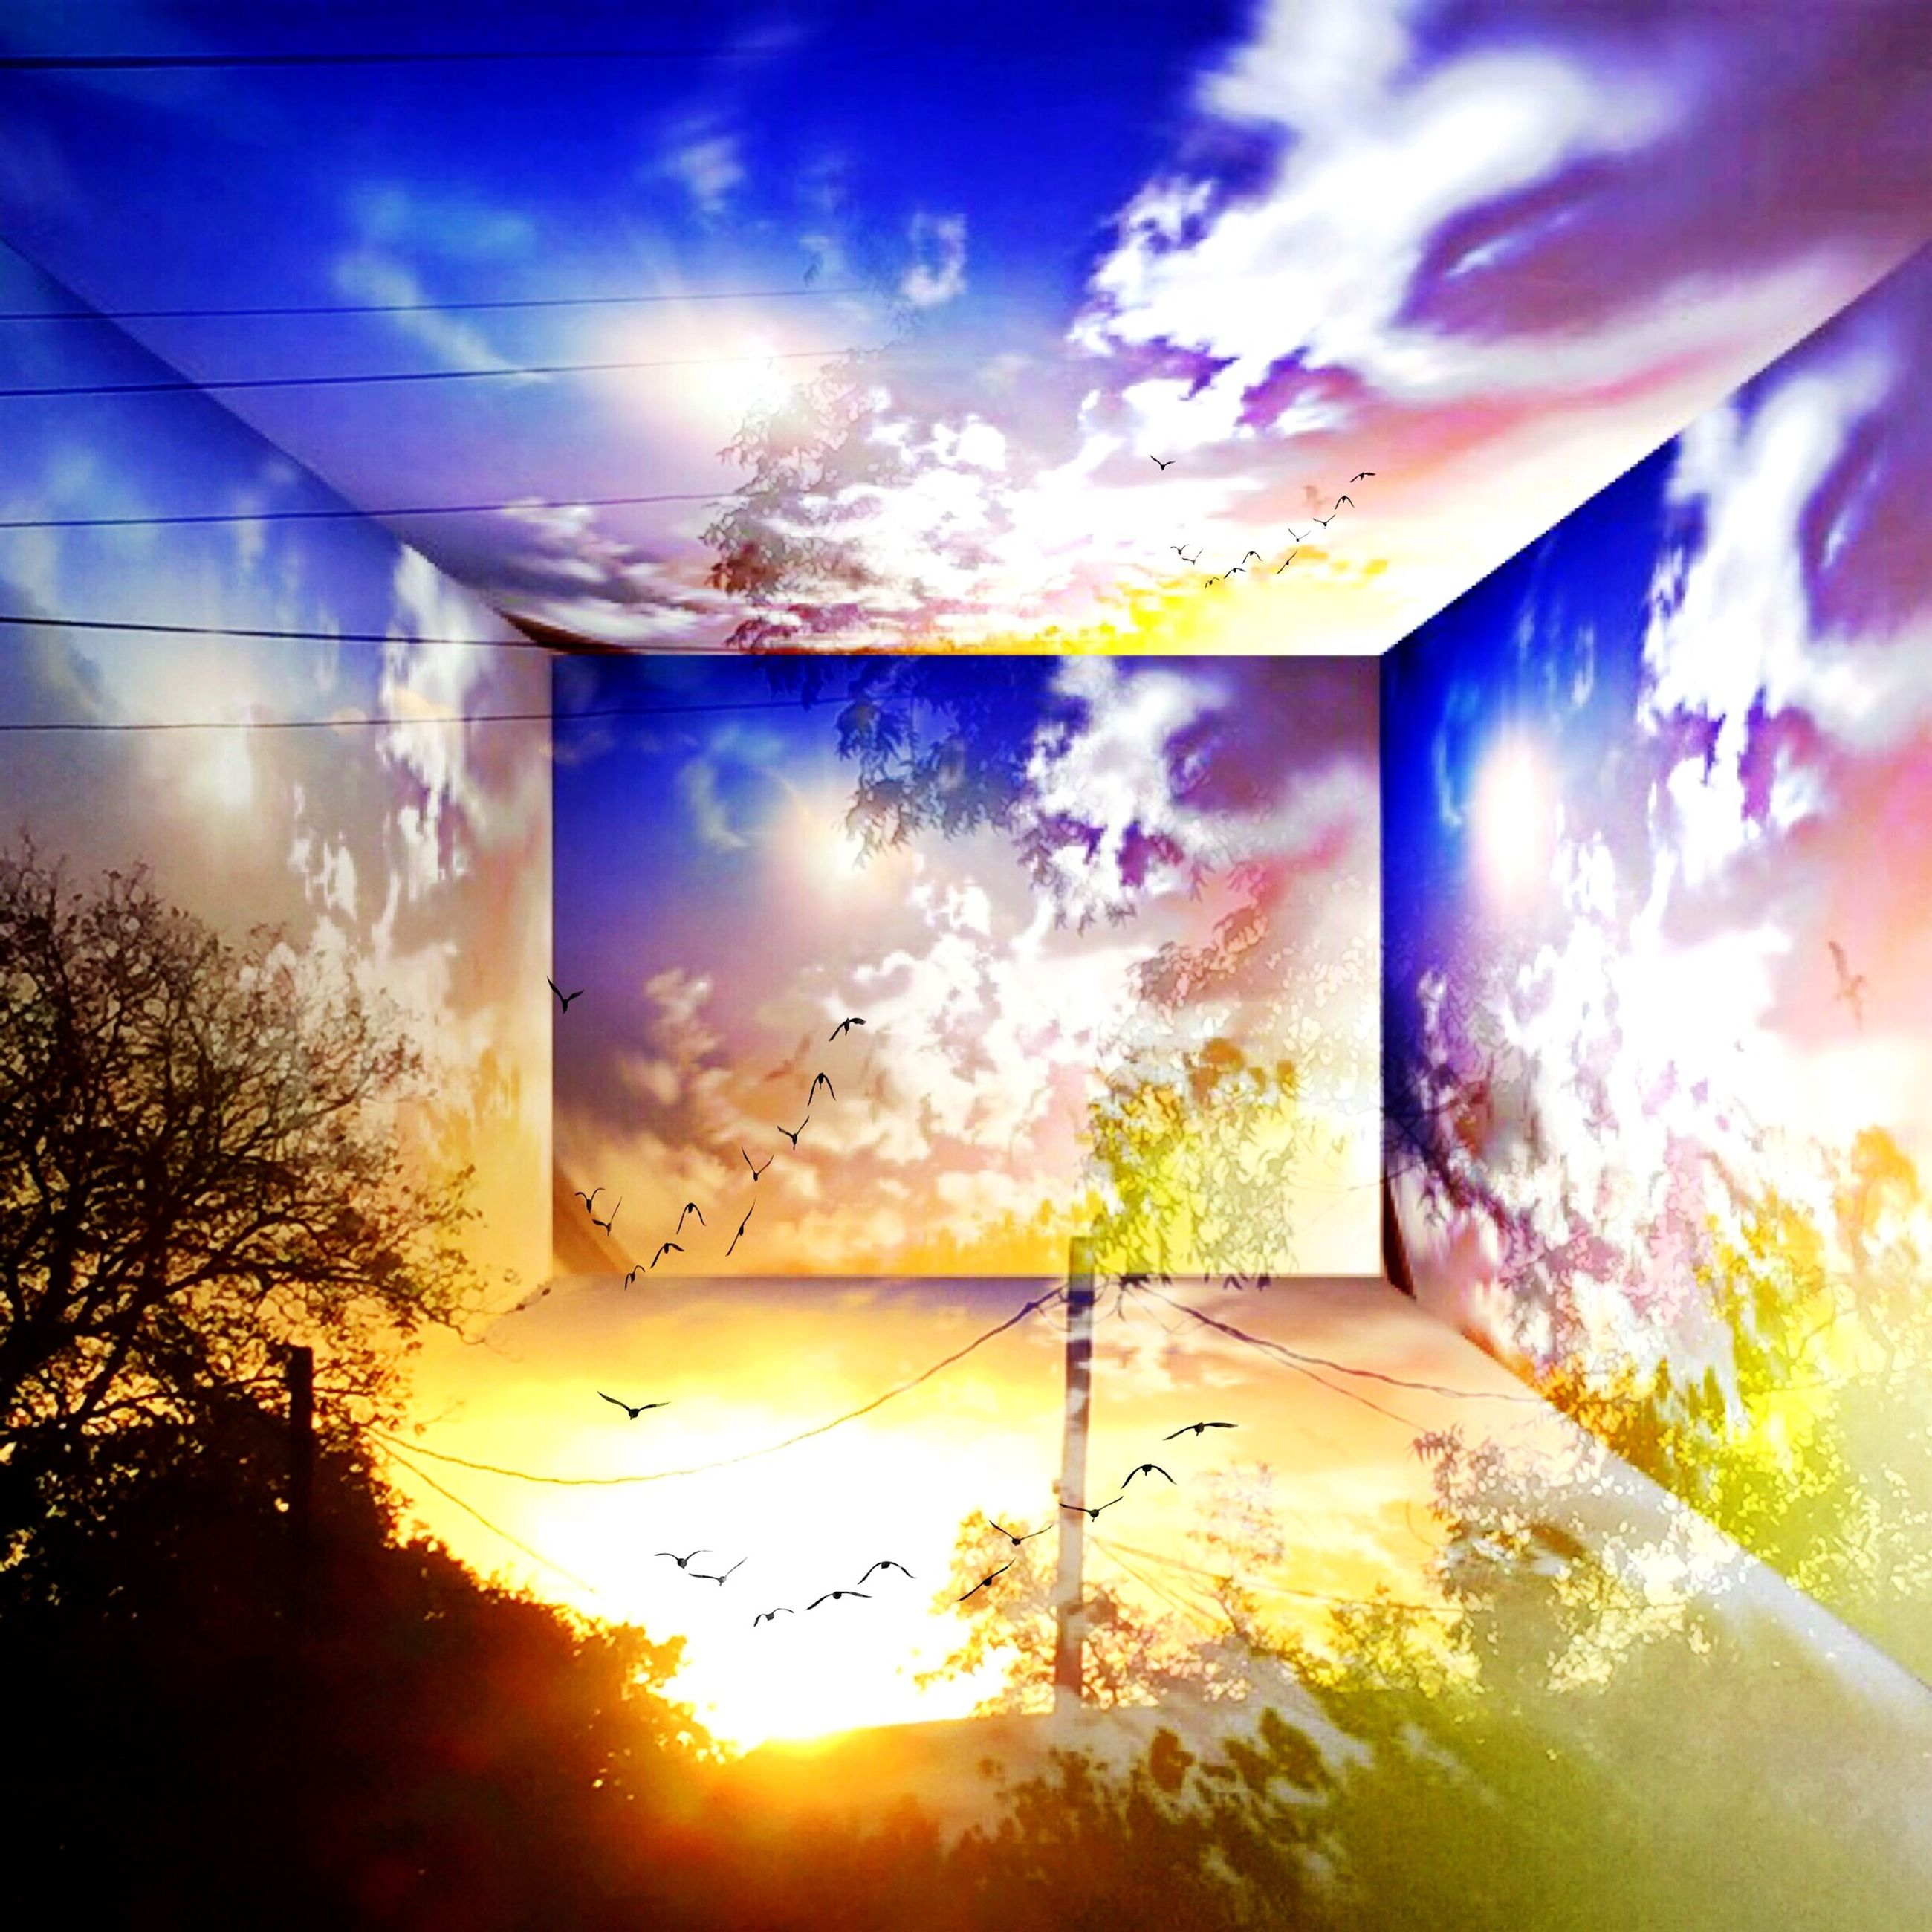 sky, sun, indoors, sunlight, window, built structure, architecture, sunset, cloud - sky, sunbeam, blue, house, cloud, glass - material, nature, no people, beauty in nature, tree, lens flare, transparent